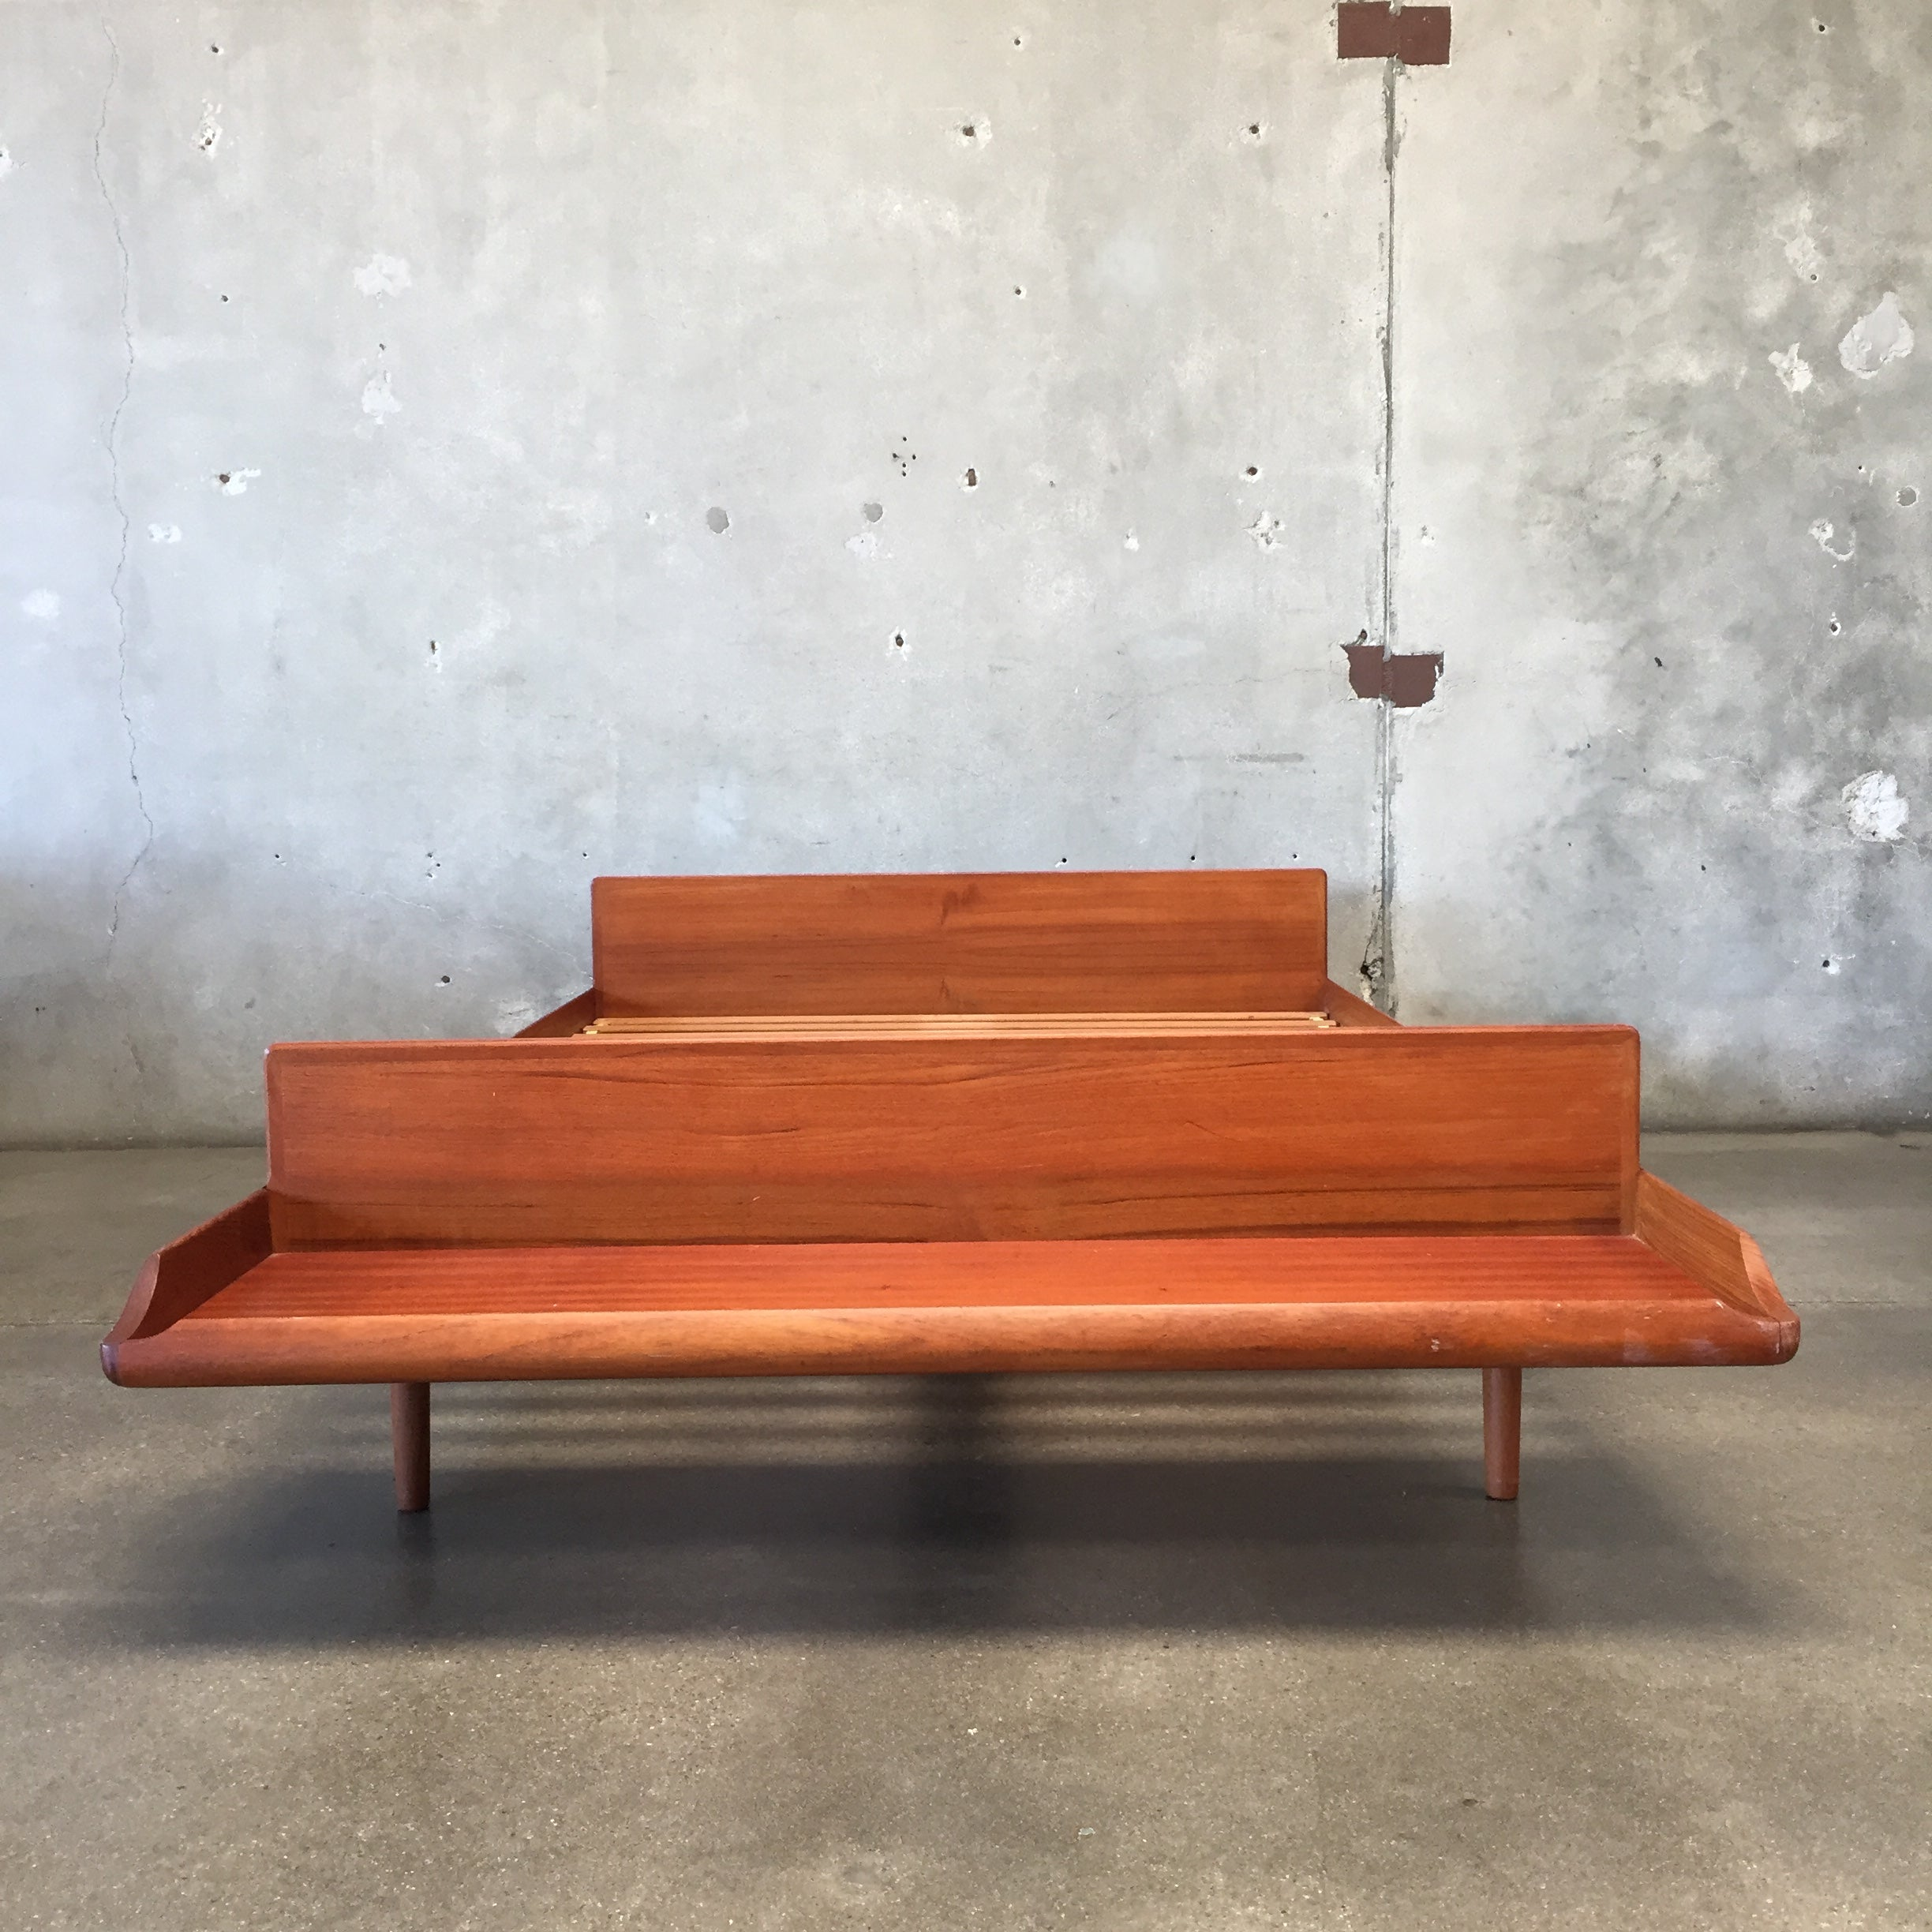 Tremendous Cave Sanford Teak Platform Bed With Bench Pdpeps Interior Chair Design Pdpepsorg